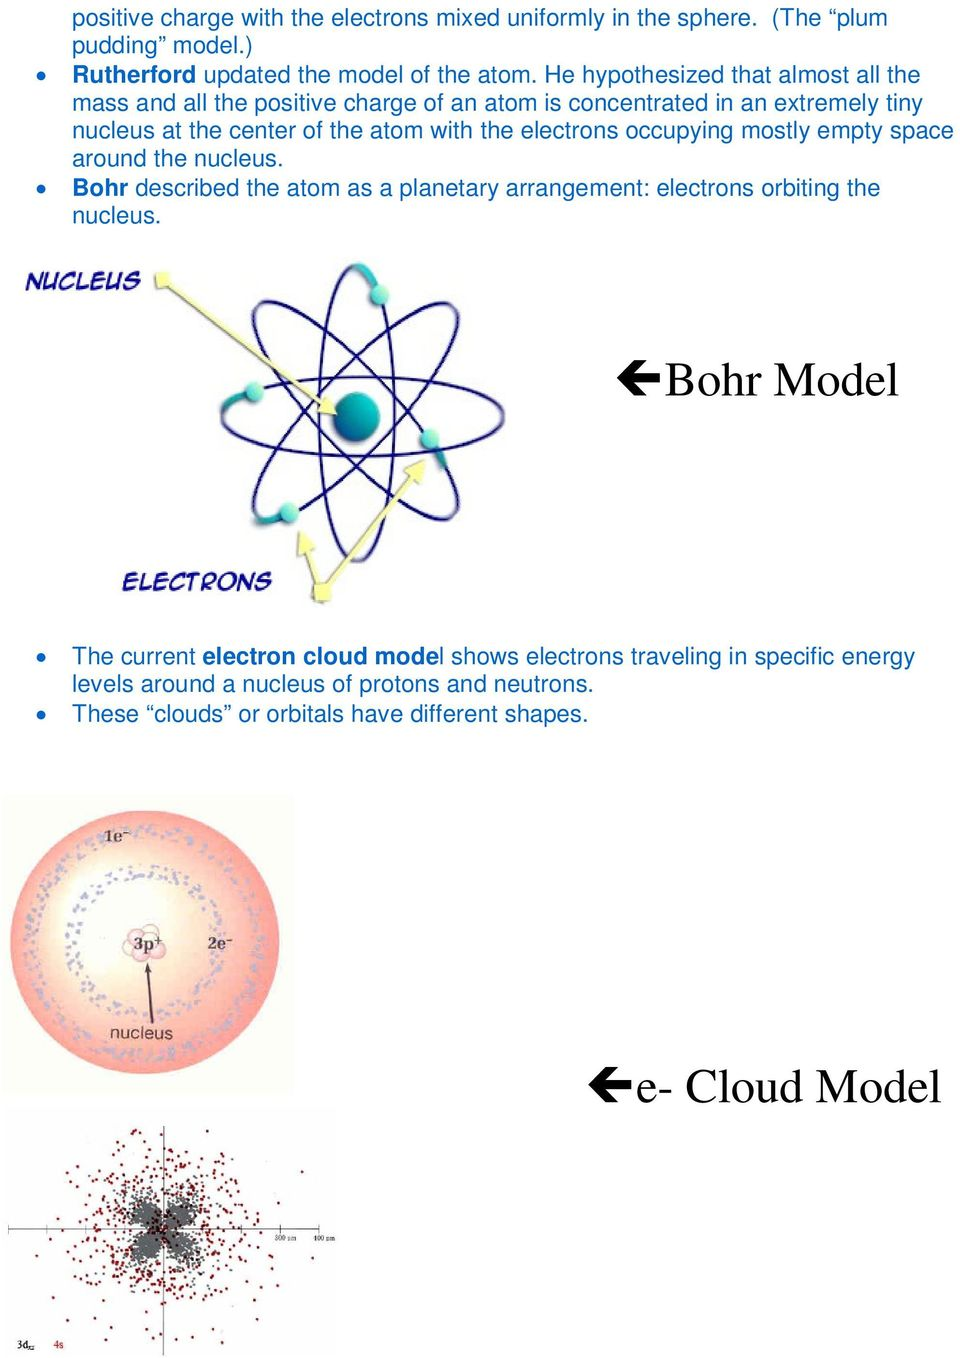 electrons occupying mostly empty space around the nucleus. Bohr described the atom as a planetary arrangement: electrons orbiting the nucleus.